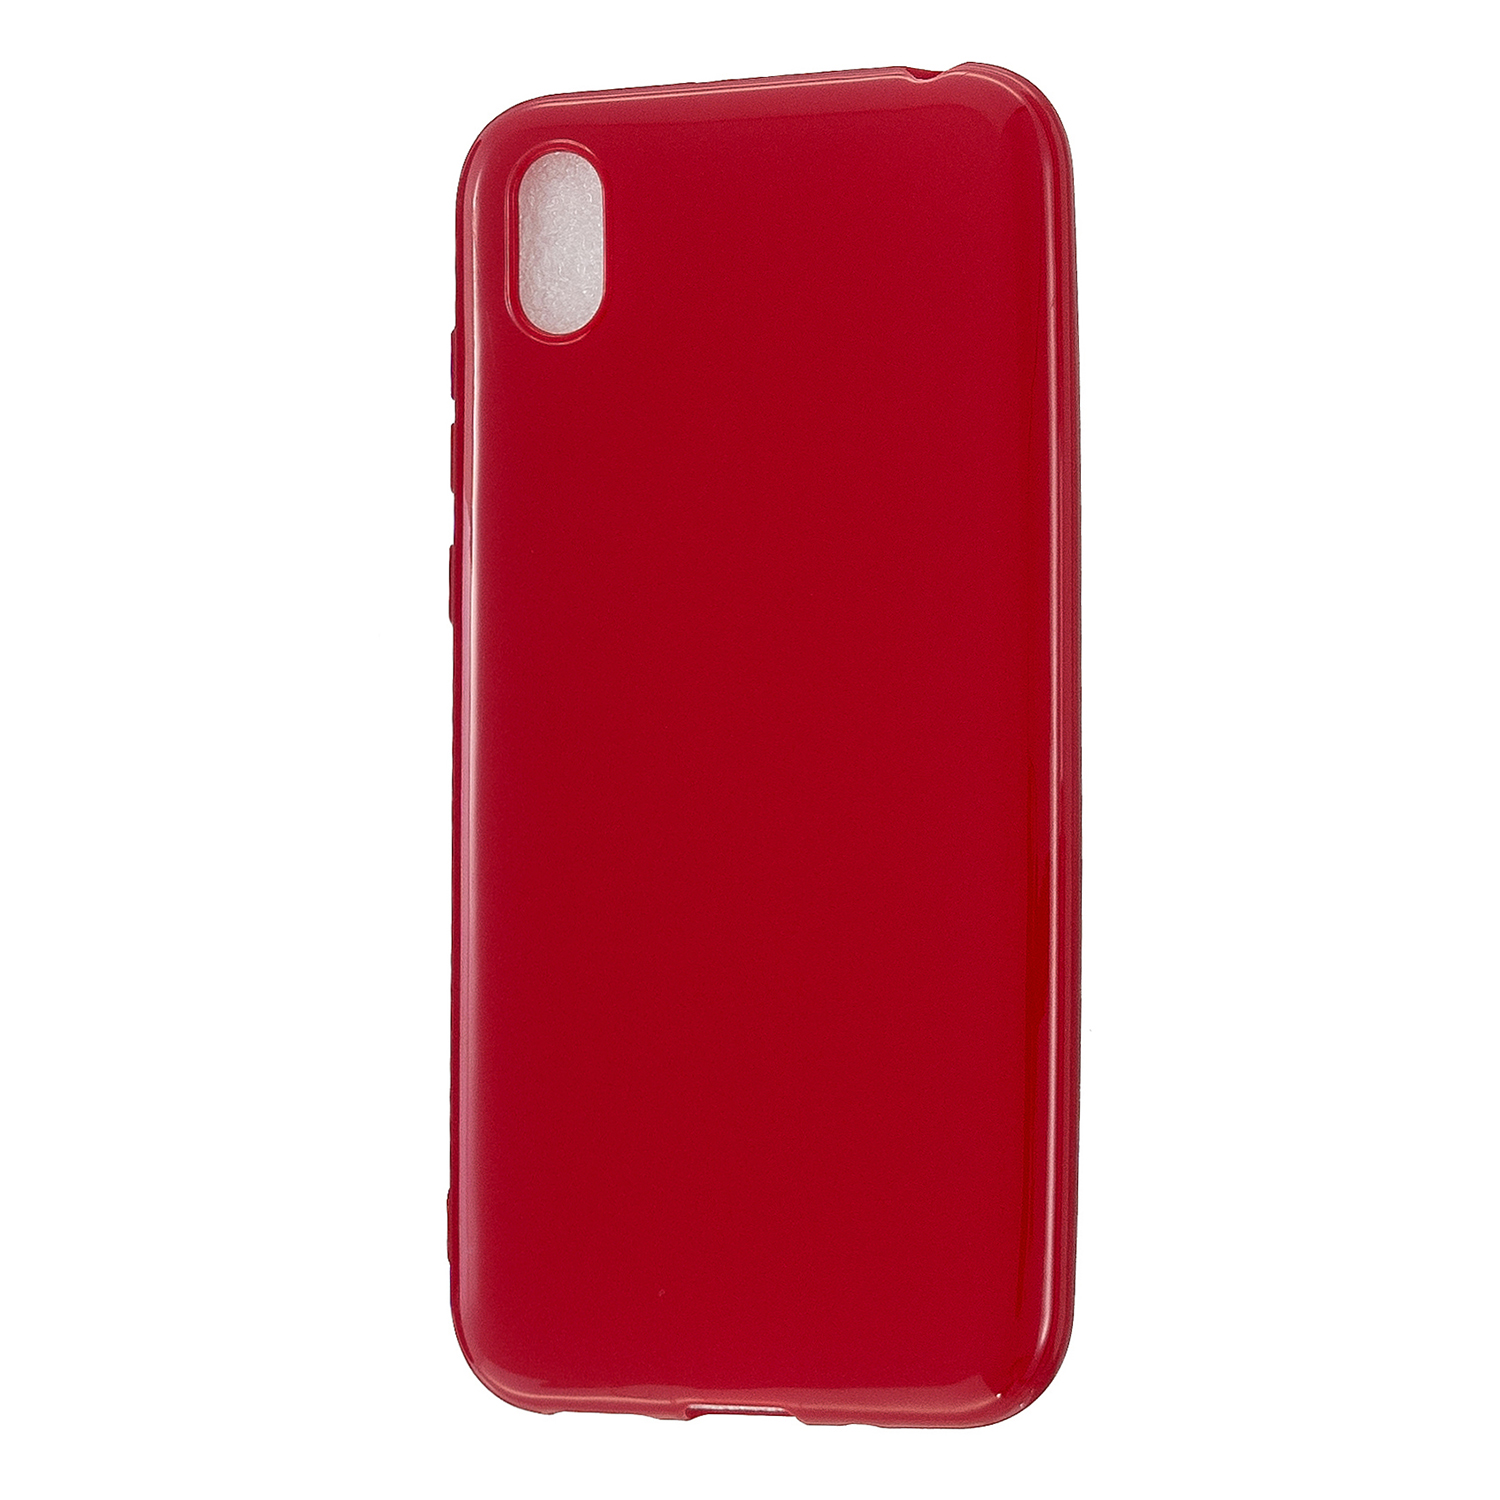 For HUAWEI Y5 2018/2019 TPU Phone Case Simple Profile Delicate Finish Cellphone Cover Full Body Protection Rose red